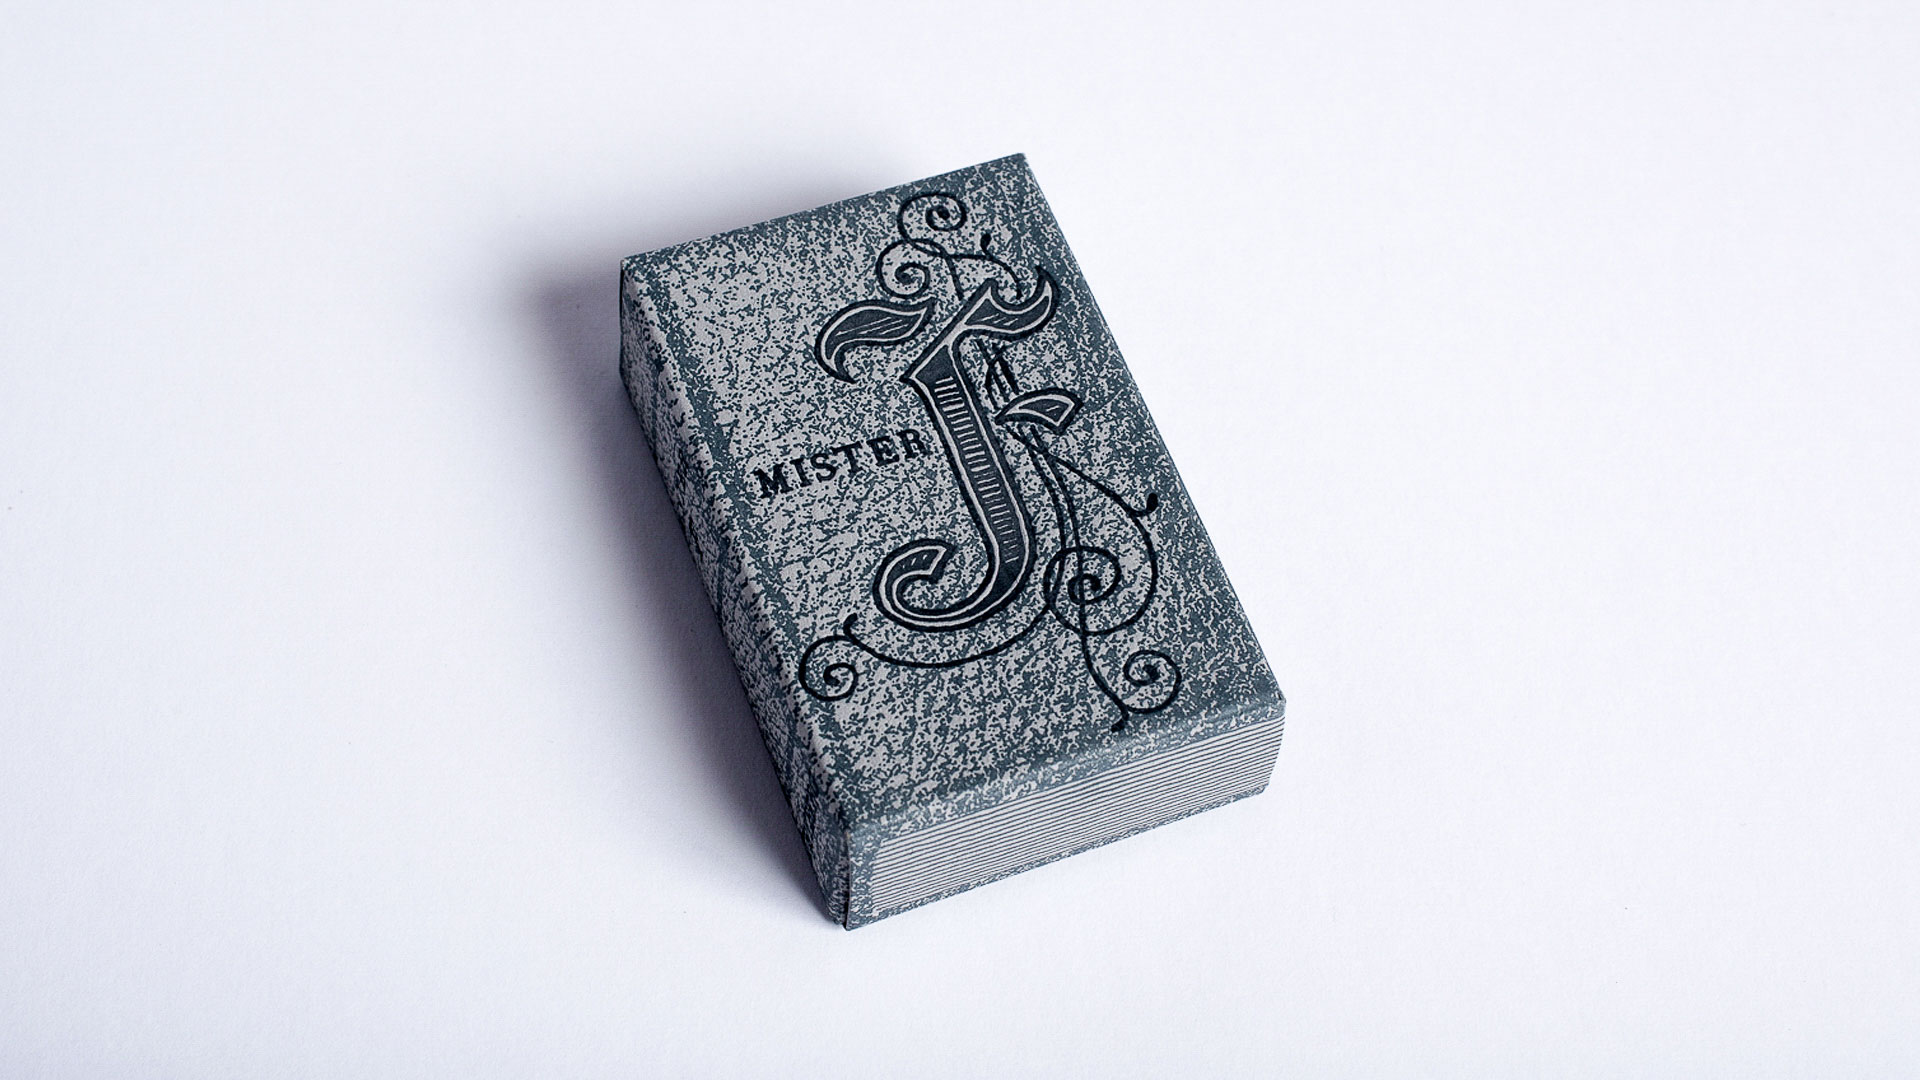 Scary 'Mister F' Letterpress Book - PaperSpecs